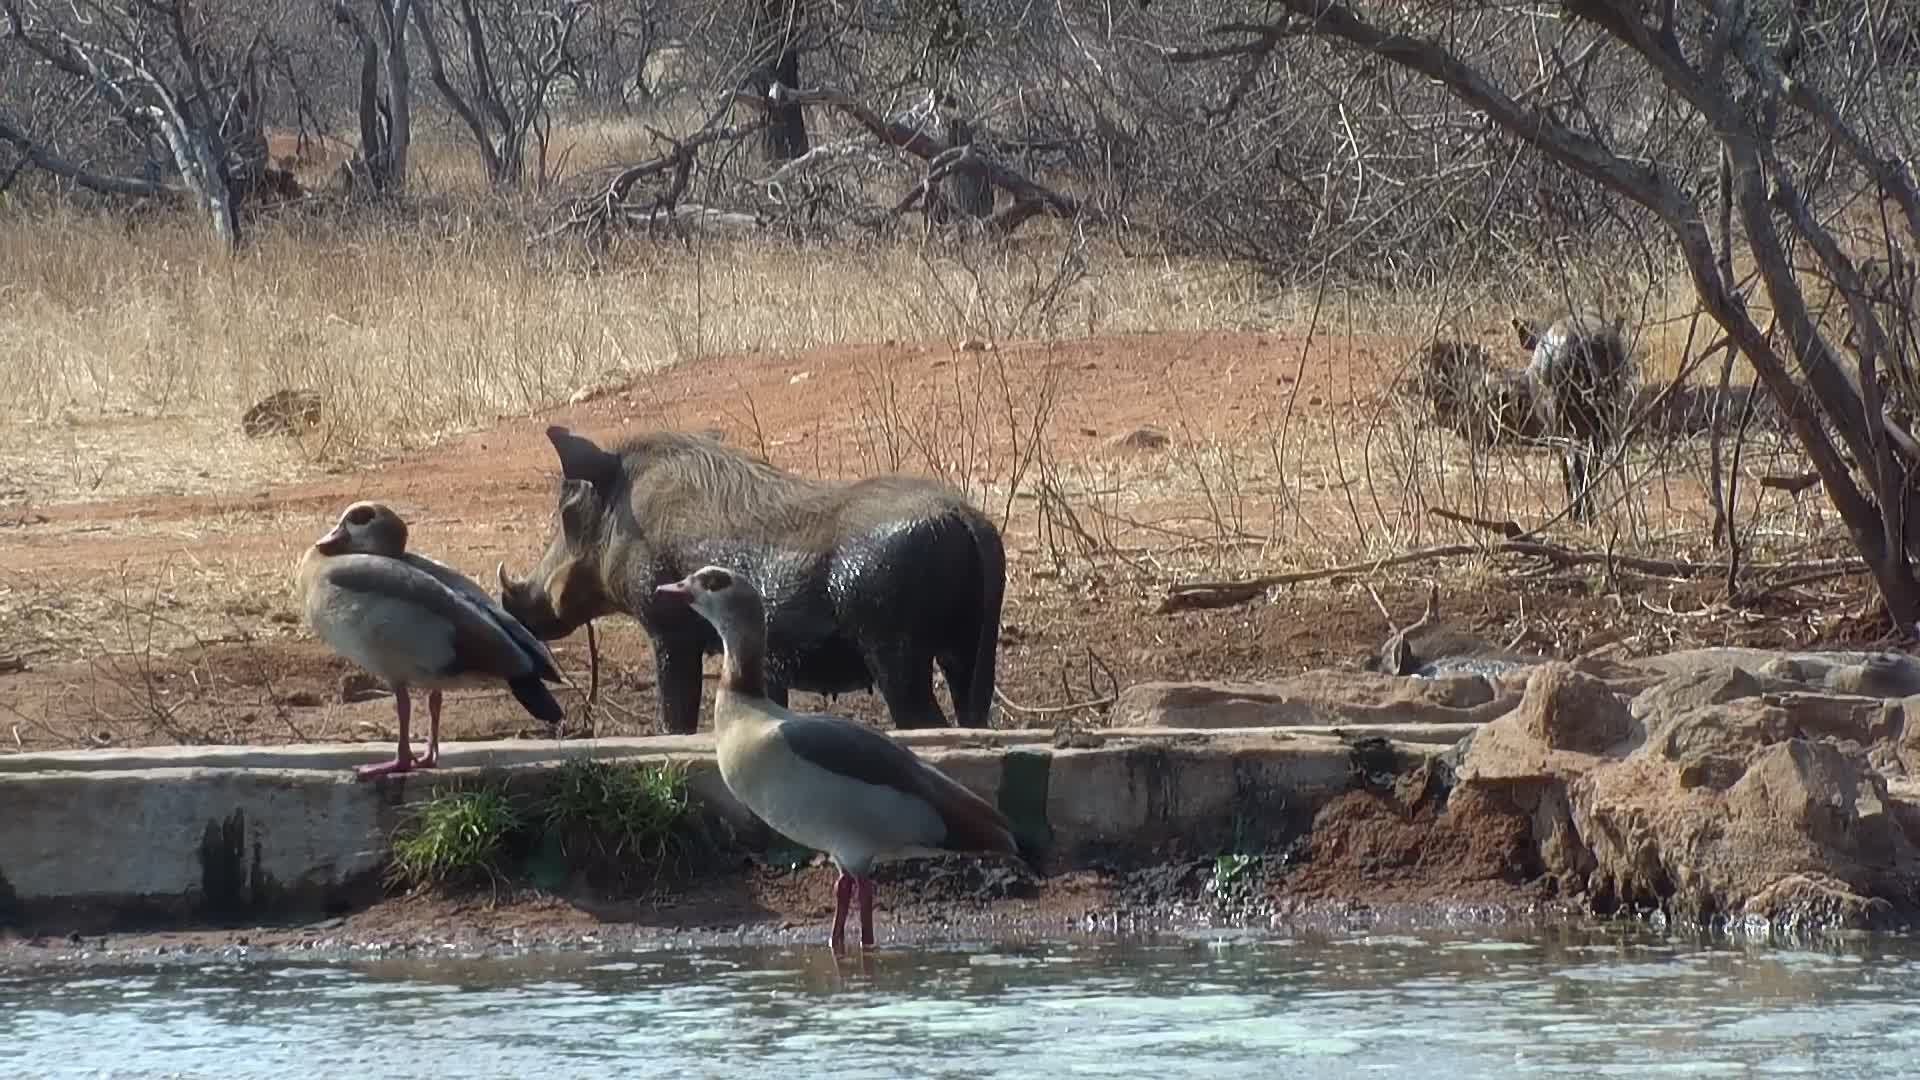 VIDEO: Warthogs and Egyptian Geese having a meeting at the waterhole